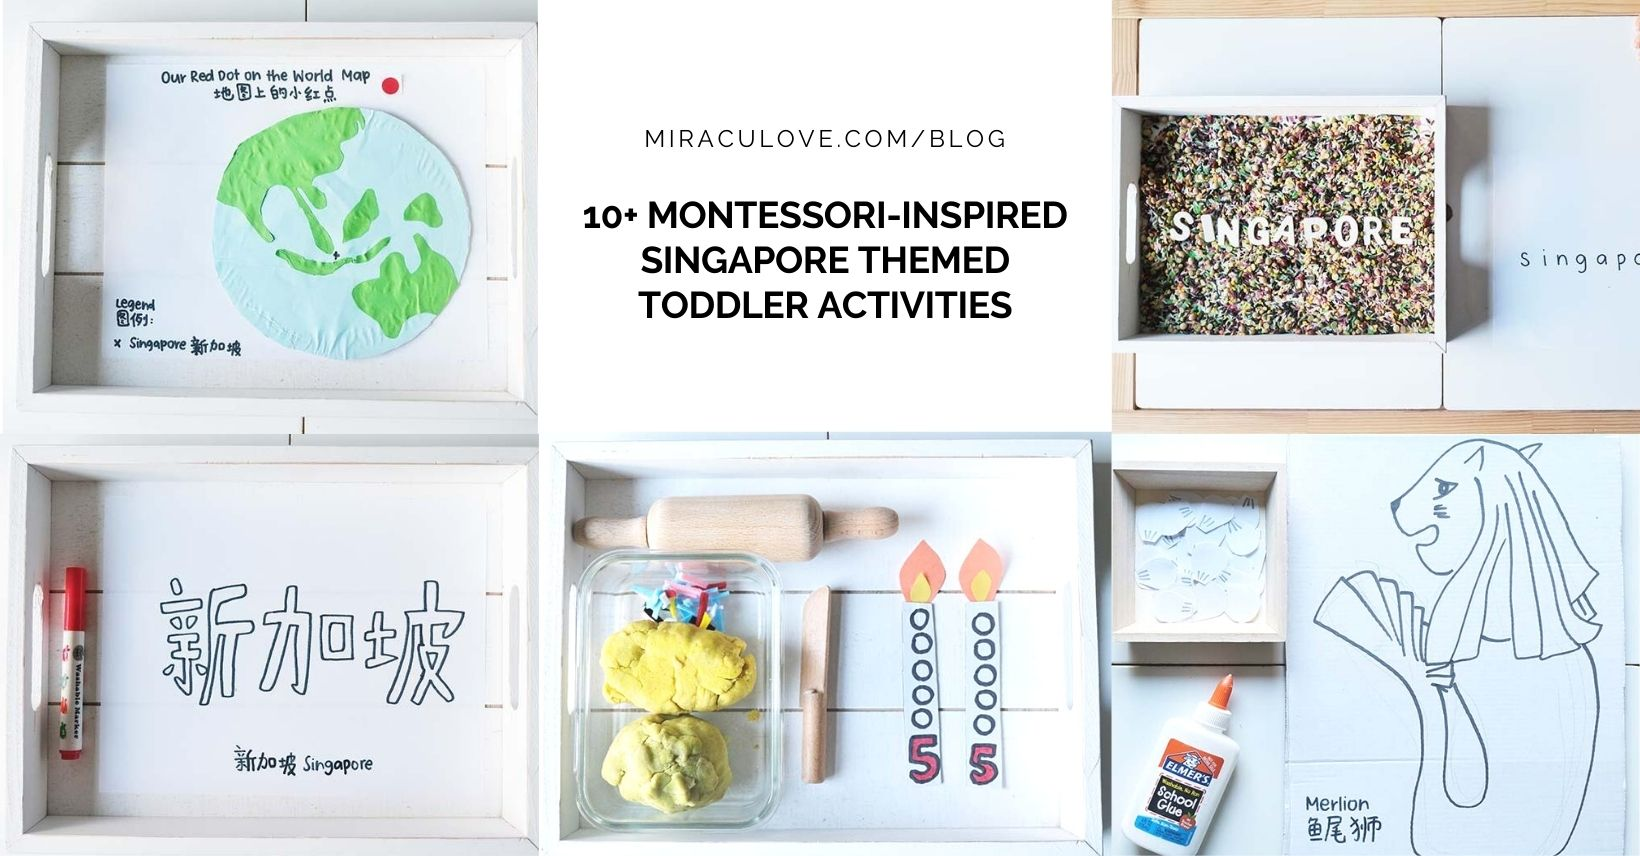 10+ Montessori-Inspired Singapore Themed Toddler Activities